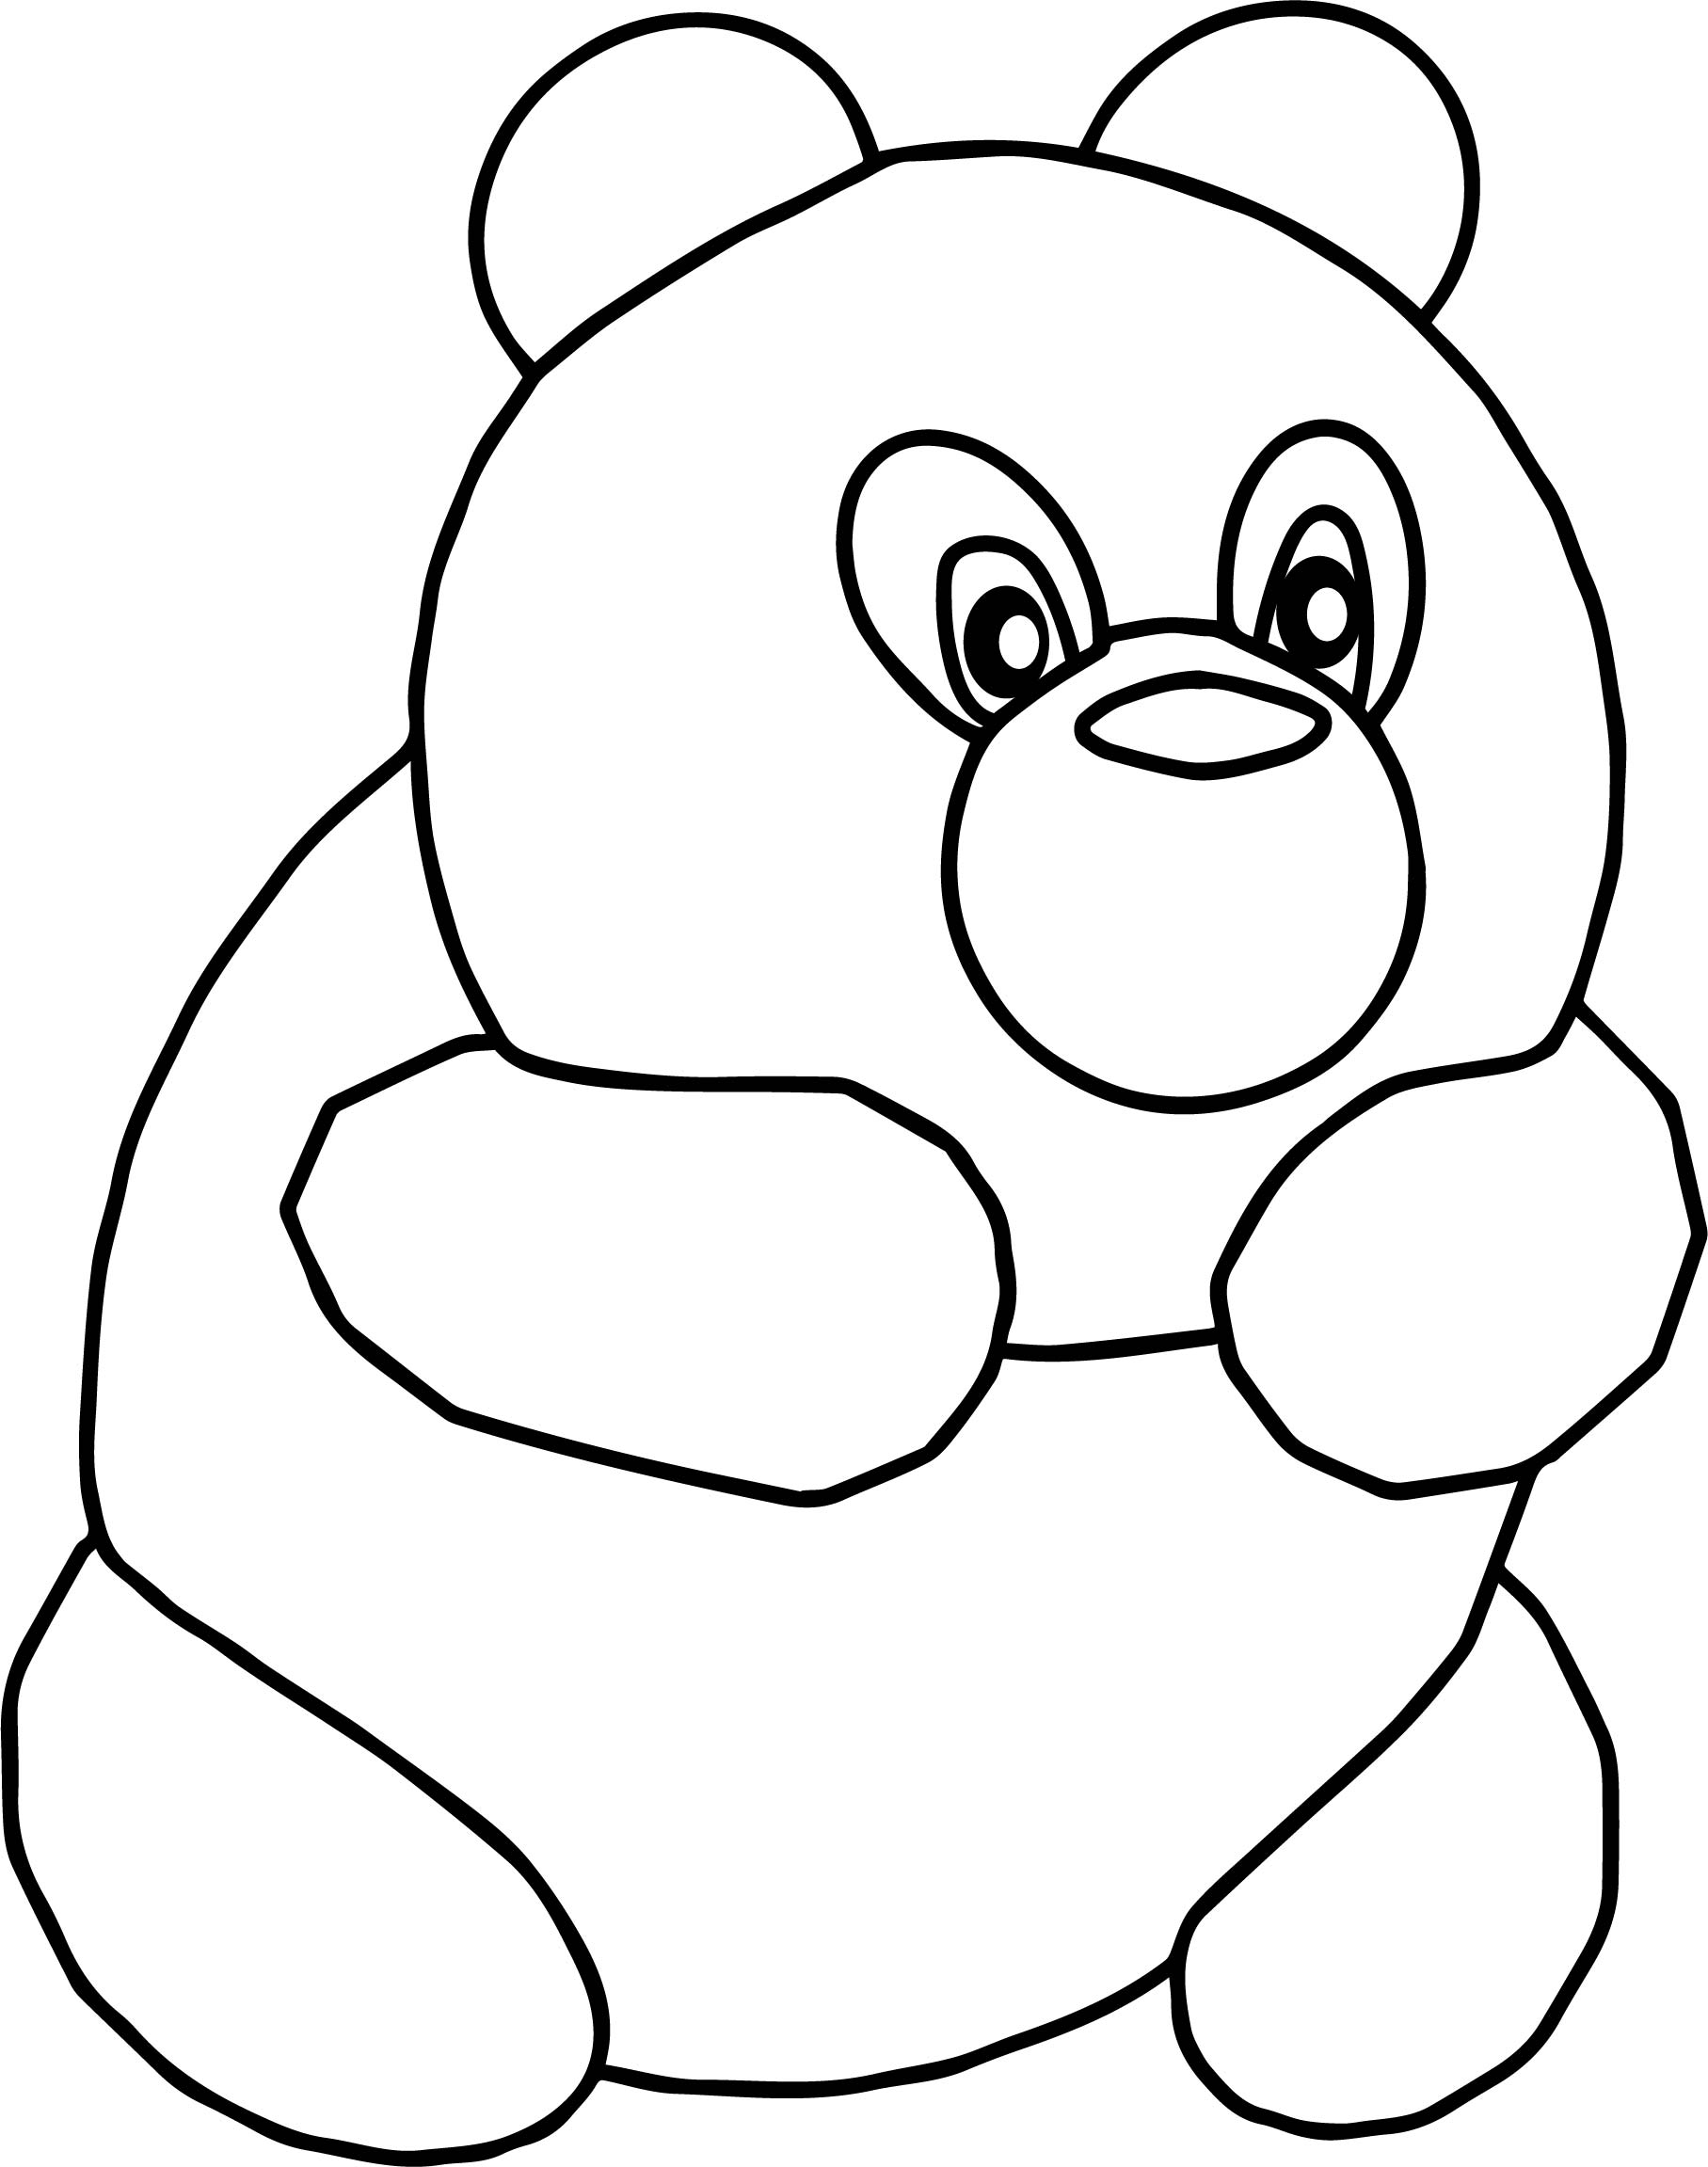 Cute Grizzly Bear Coloring Pages